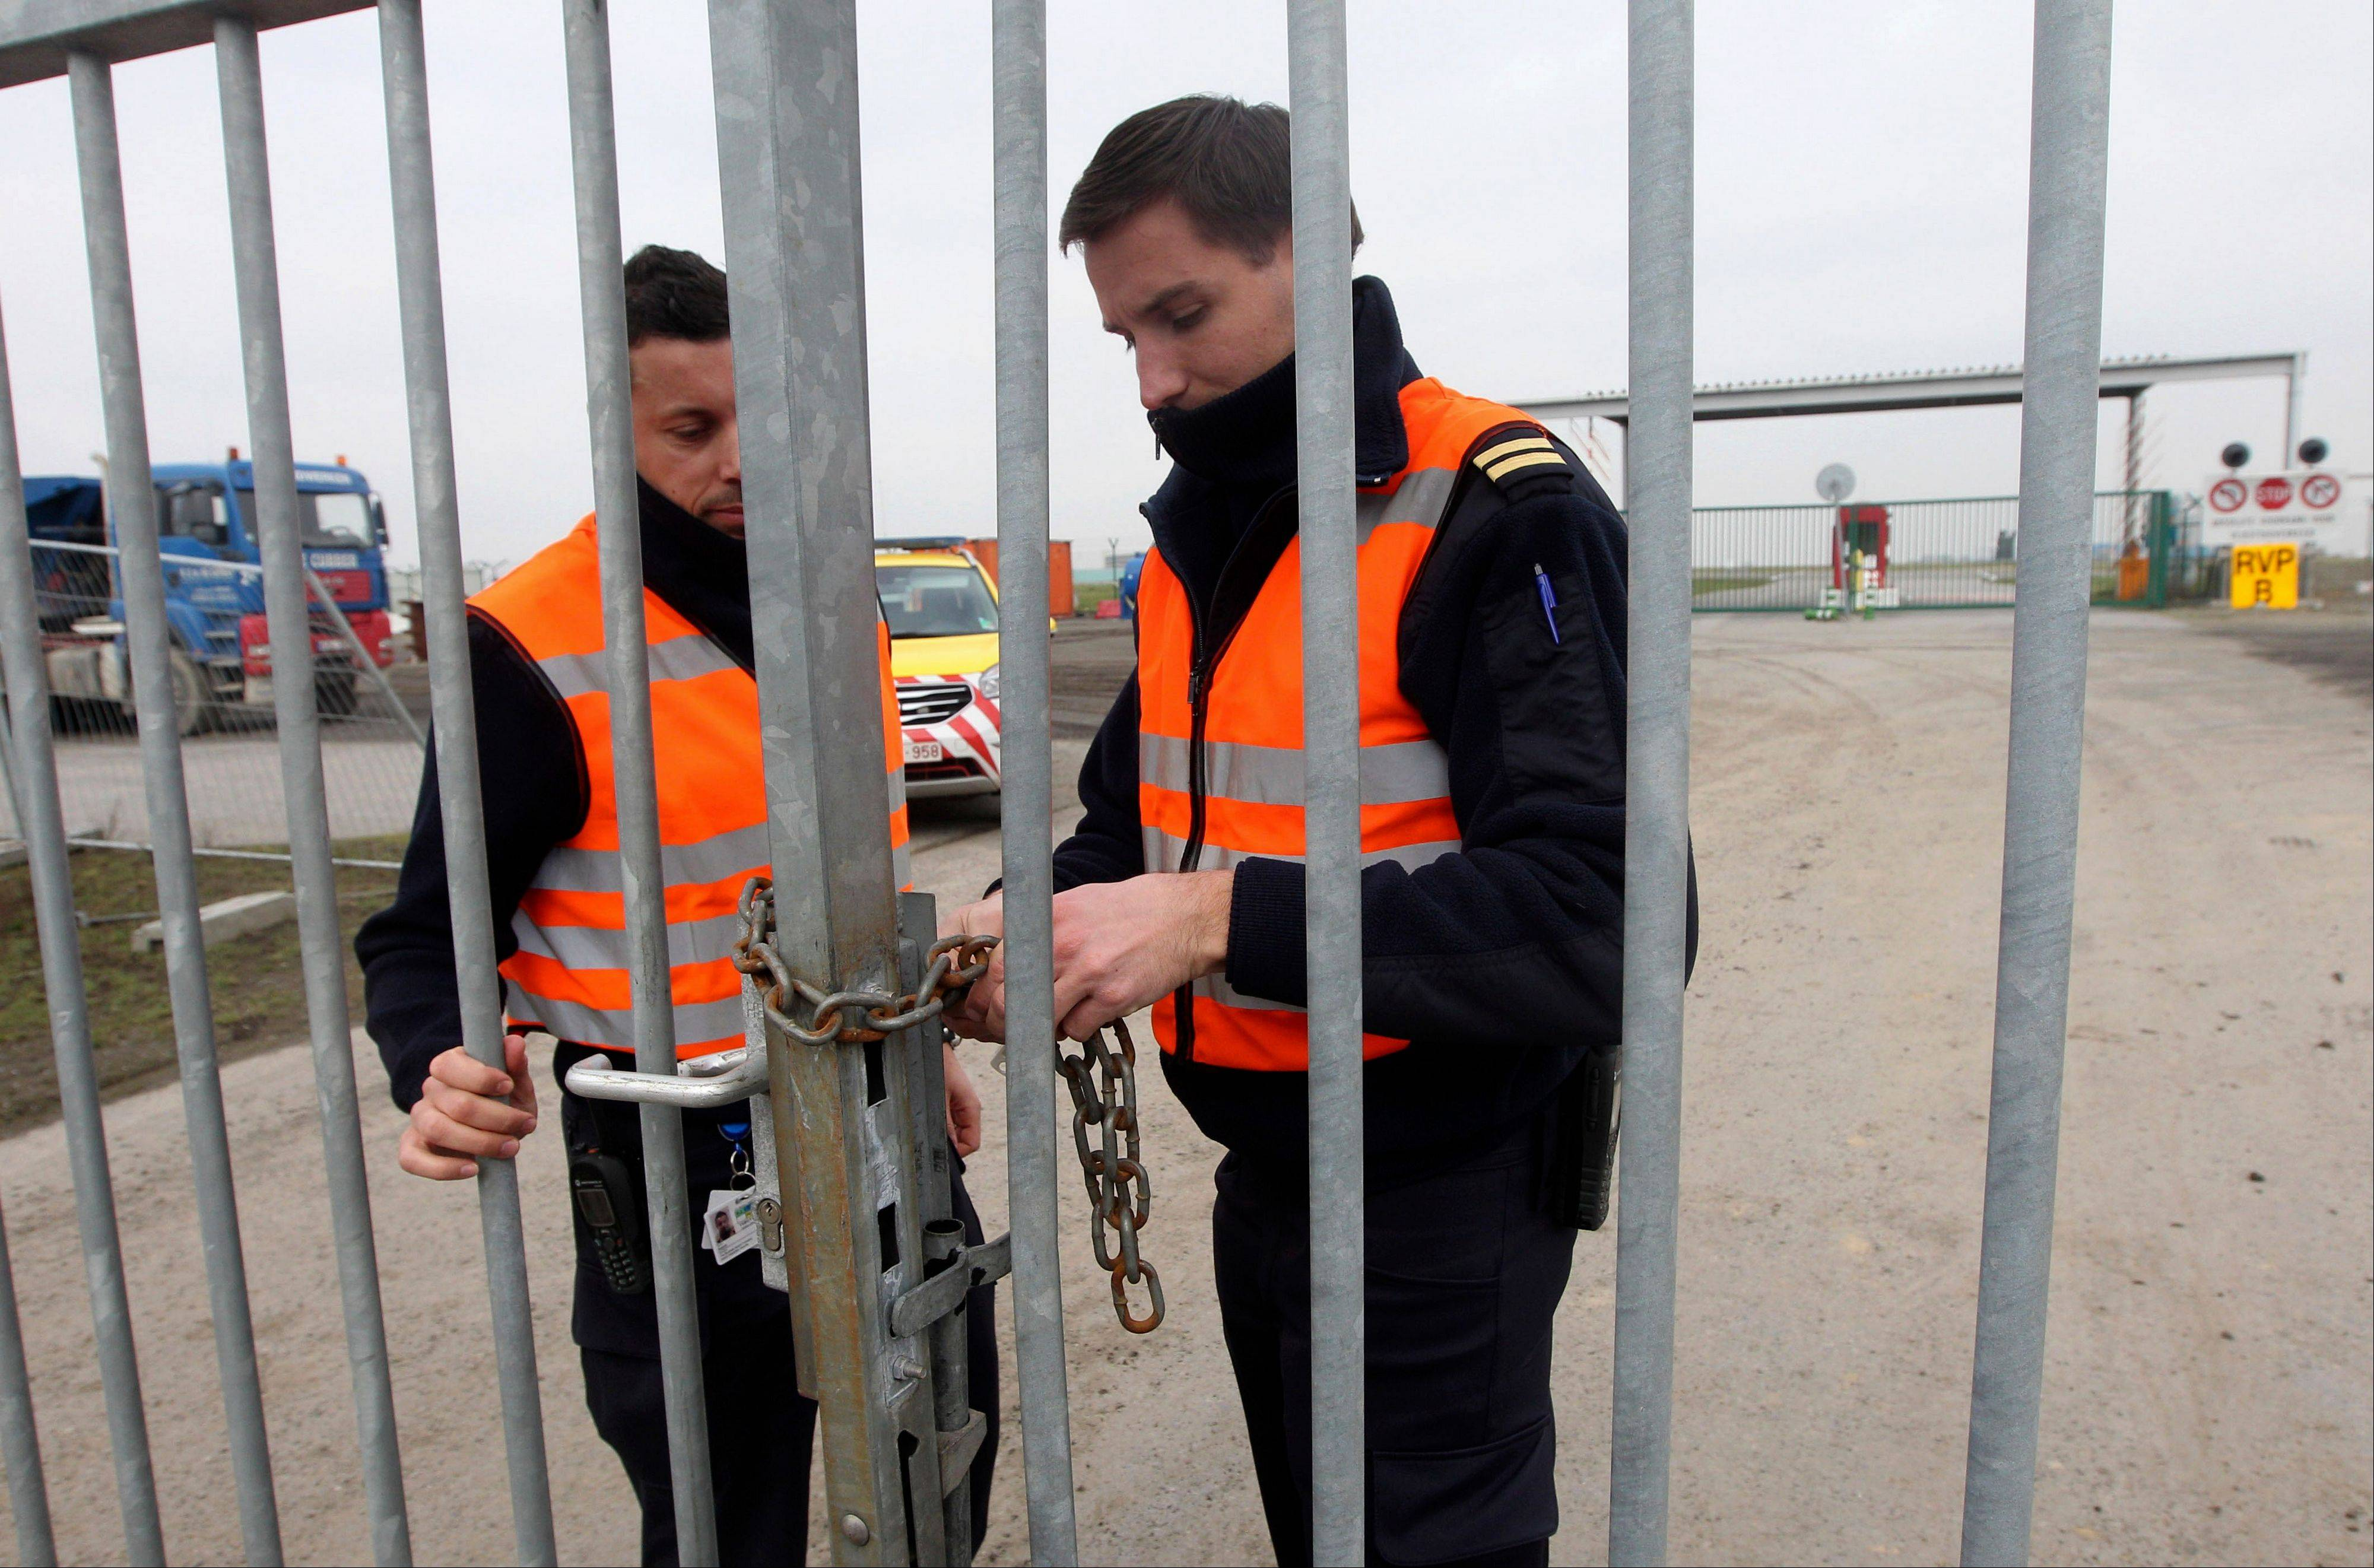 Two airport police officers use a chain to lock a gate which leads to the airport tarmac, at Brussels international airport, Tuesday, Feb. 19, 2013. Eight masked gunmen made a hole in a security fence at Brussels' international airport, drove onto the tarmac and snatched some $50 million worth of diamonds from the hold of a Swiss-bound plane without firing a shot, authorities said Tuesday.